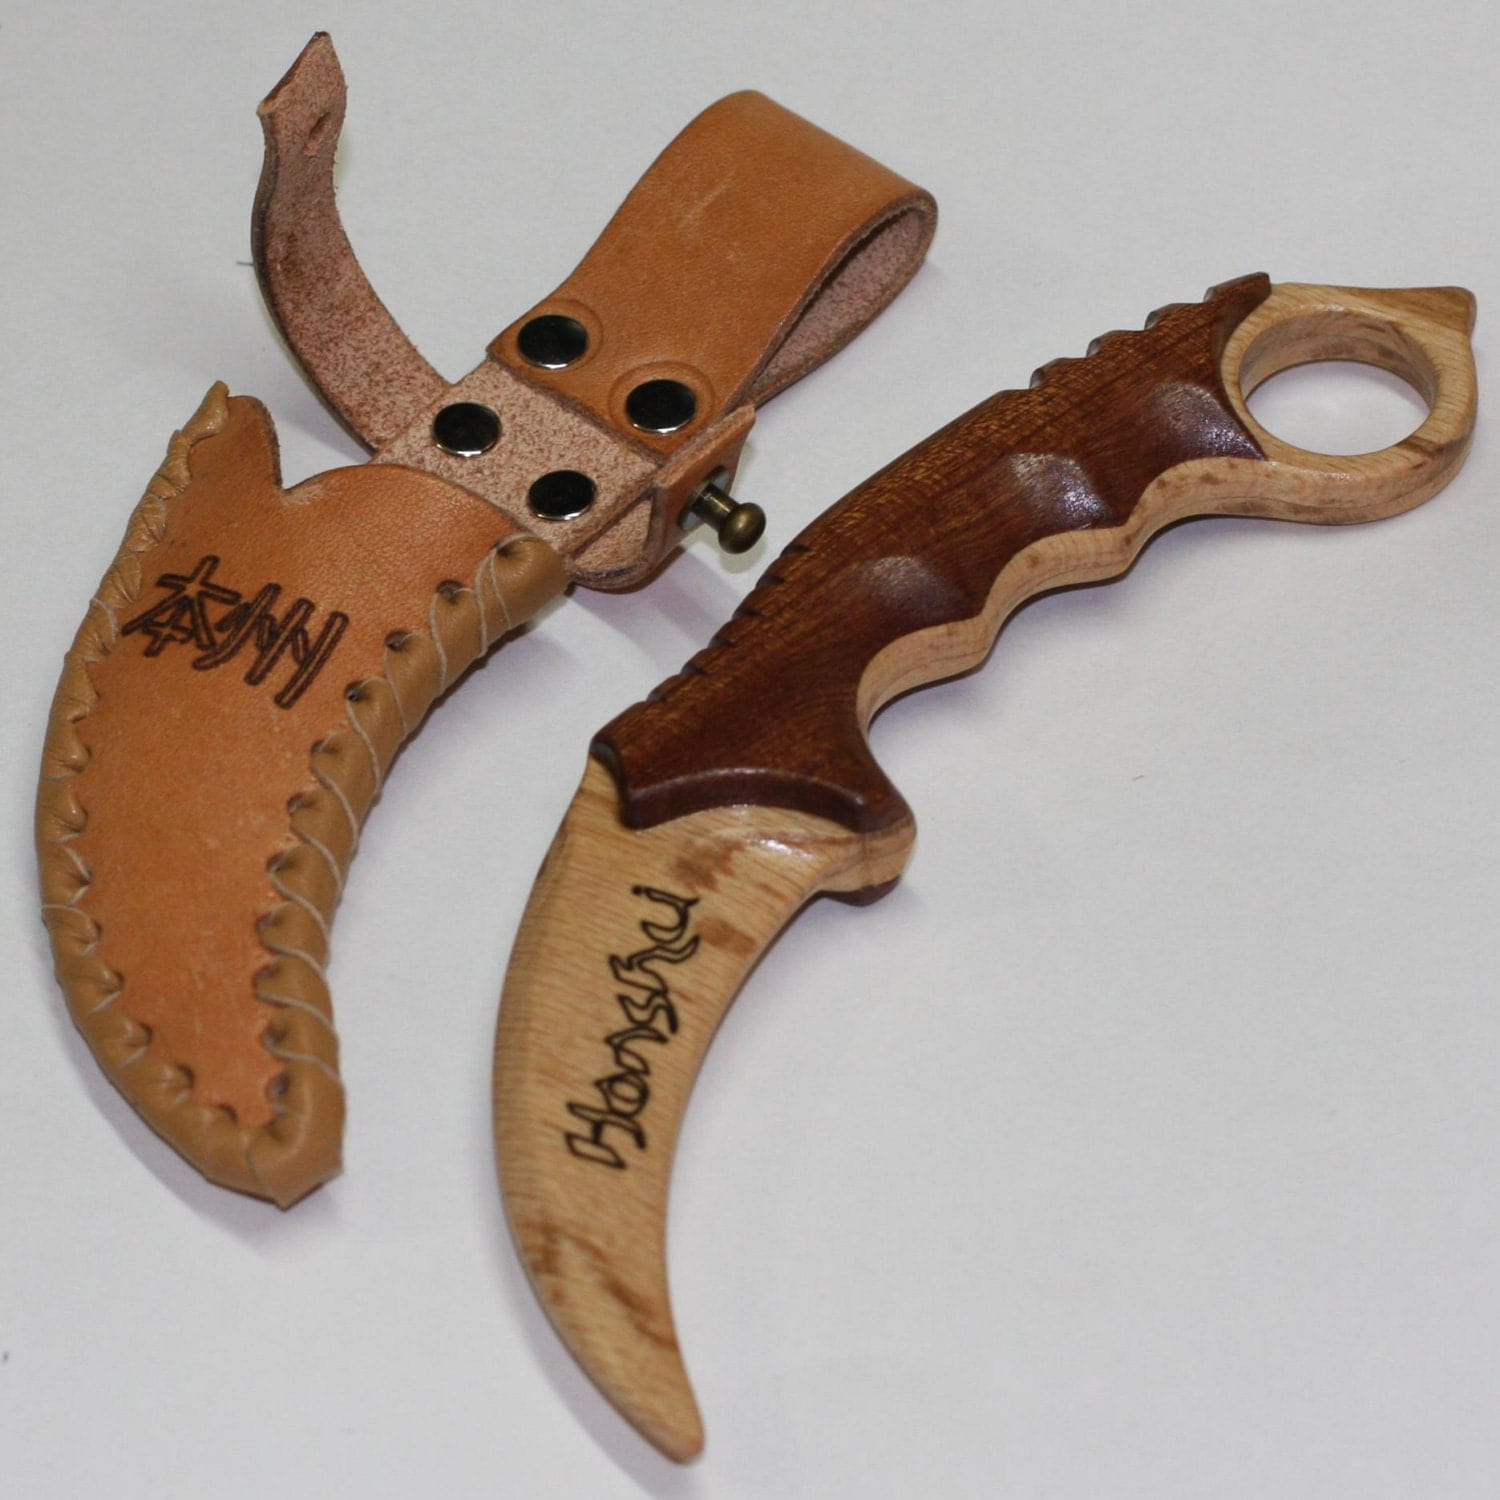 Toys For Knives : Toy wooden knife karambit with leather sheath